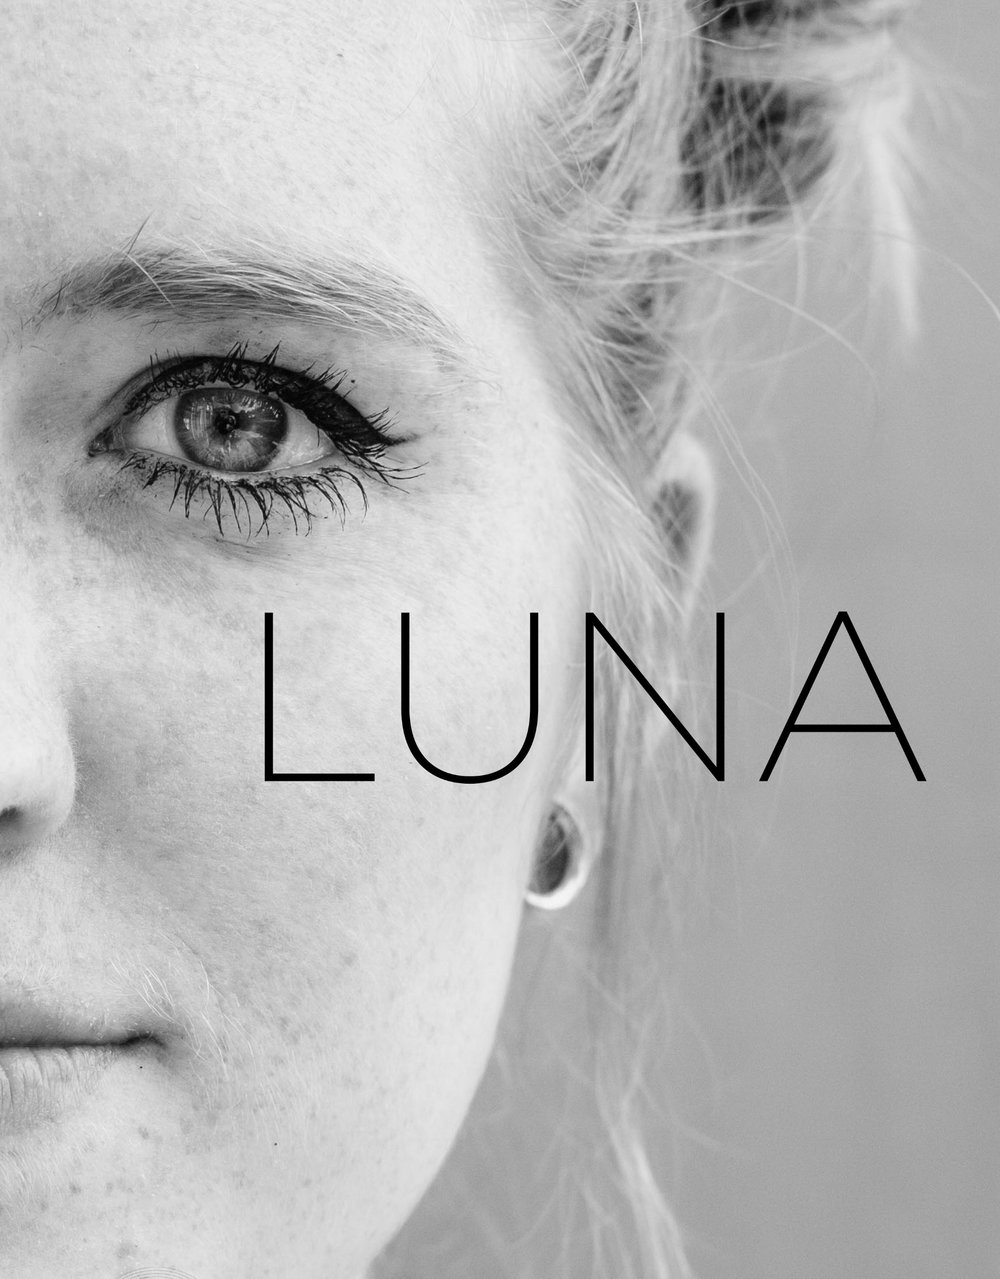 Very talented - singer with a beautiful folky voice. Look out for single releases in the future.